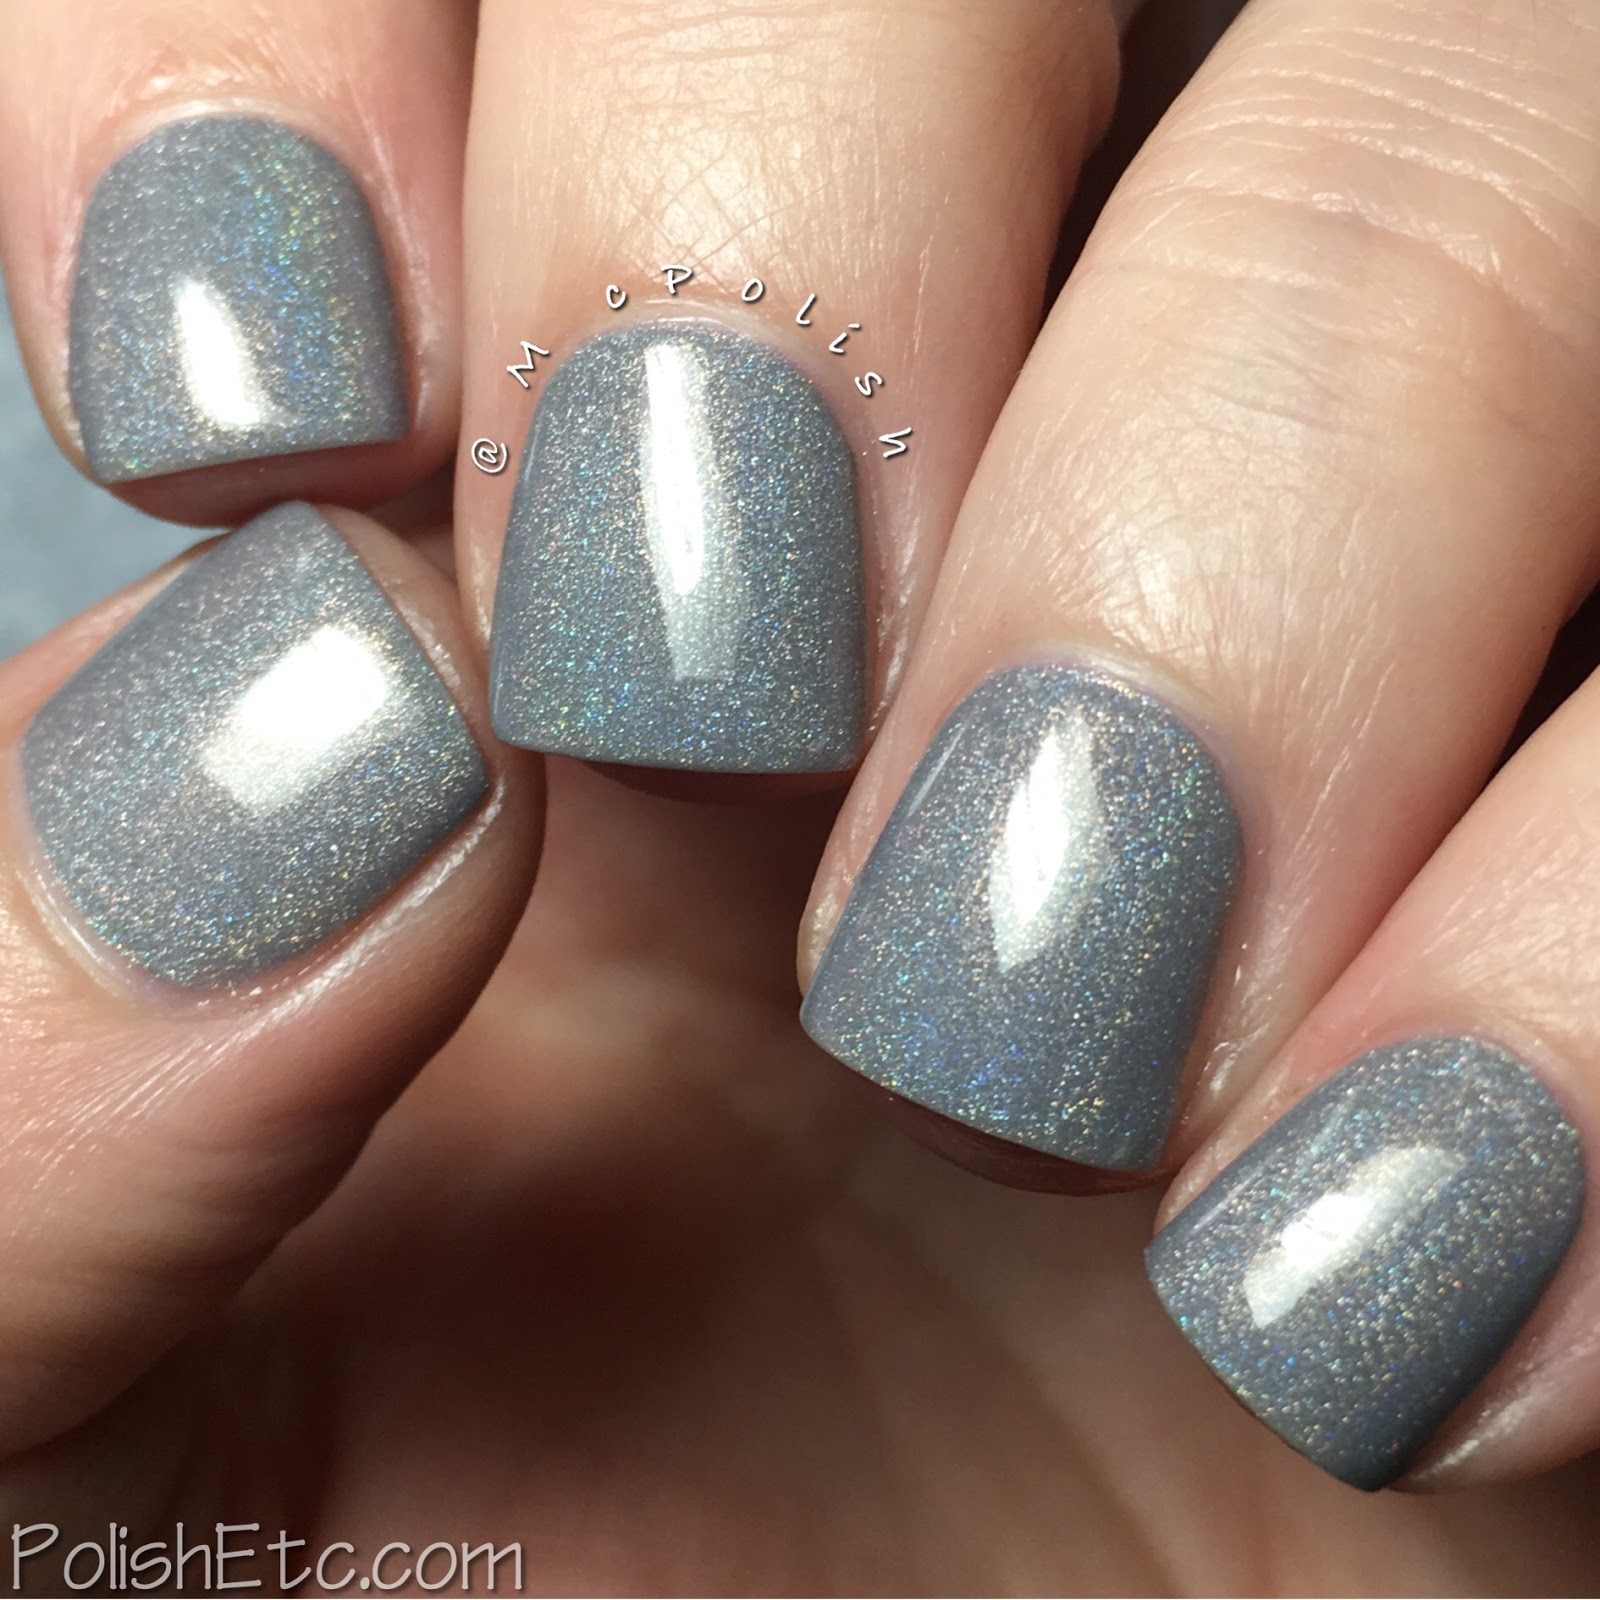 KBShimmer - Office Space Collection - McPolish - Fax of Life